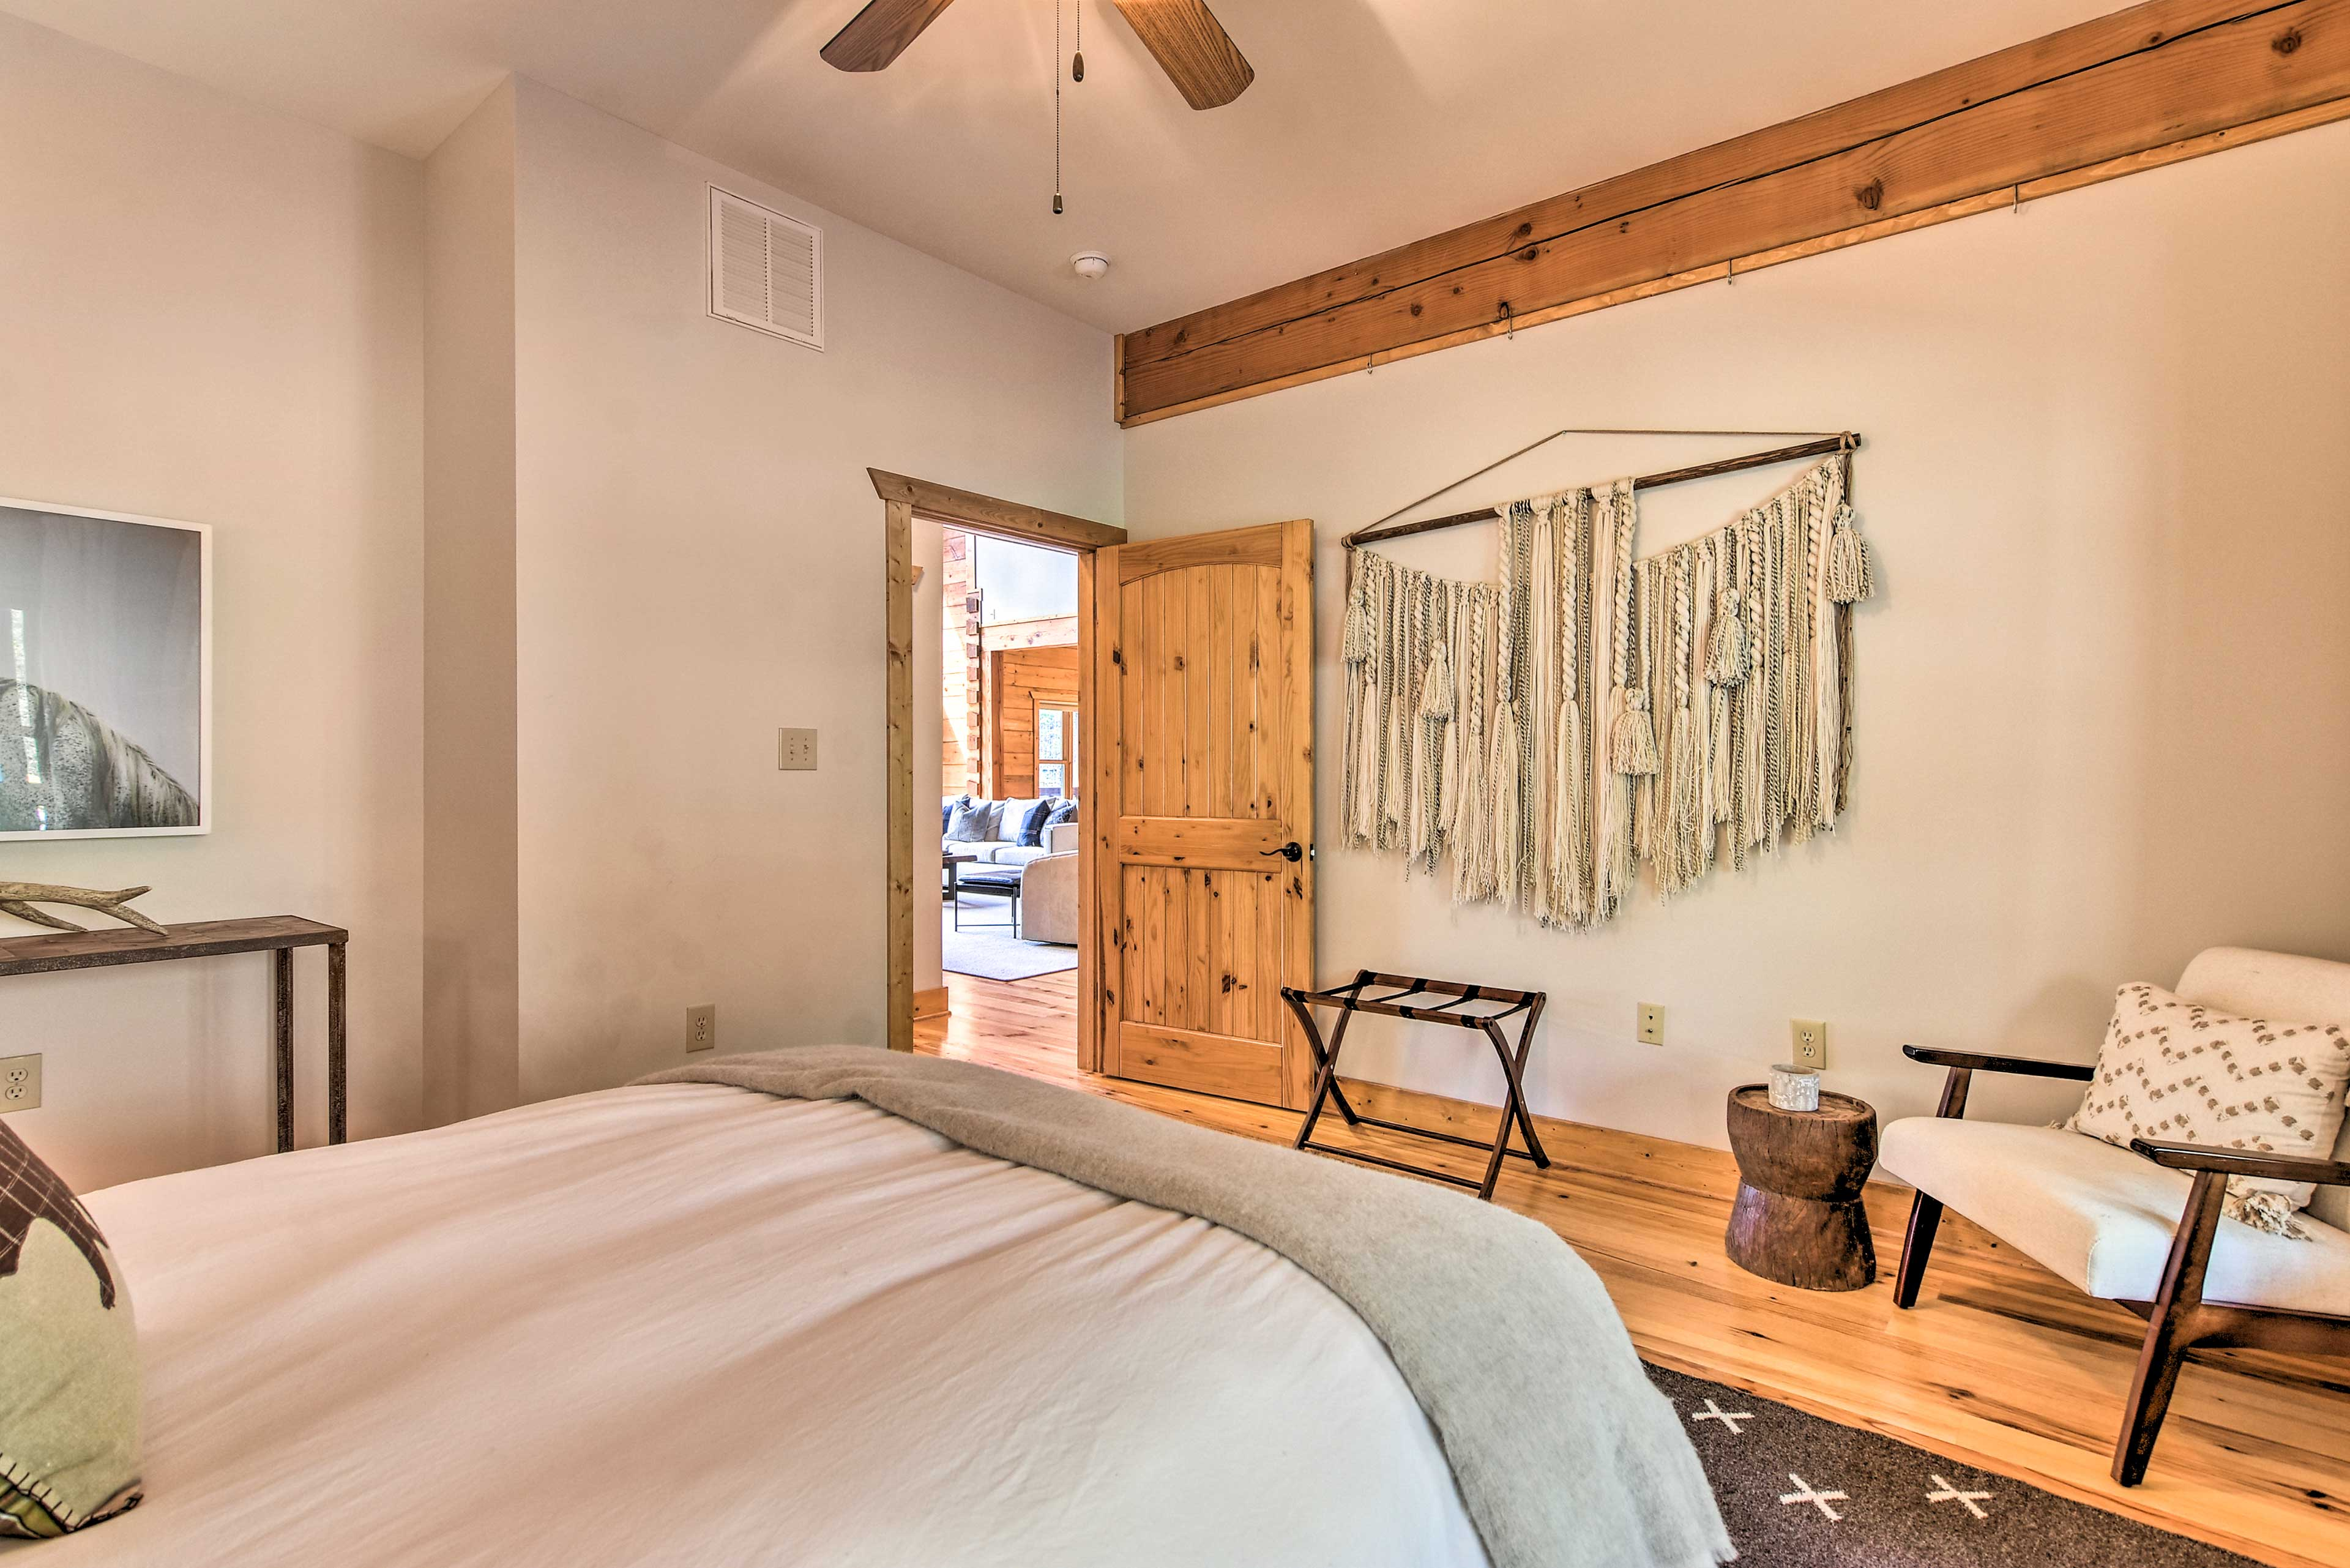 The first-floor bedroom offers a comfortable resting spot for 2.